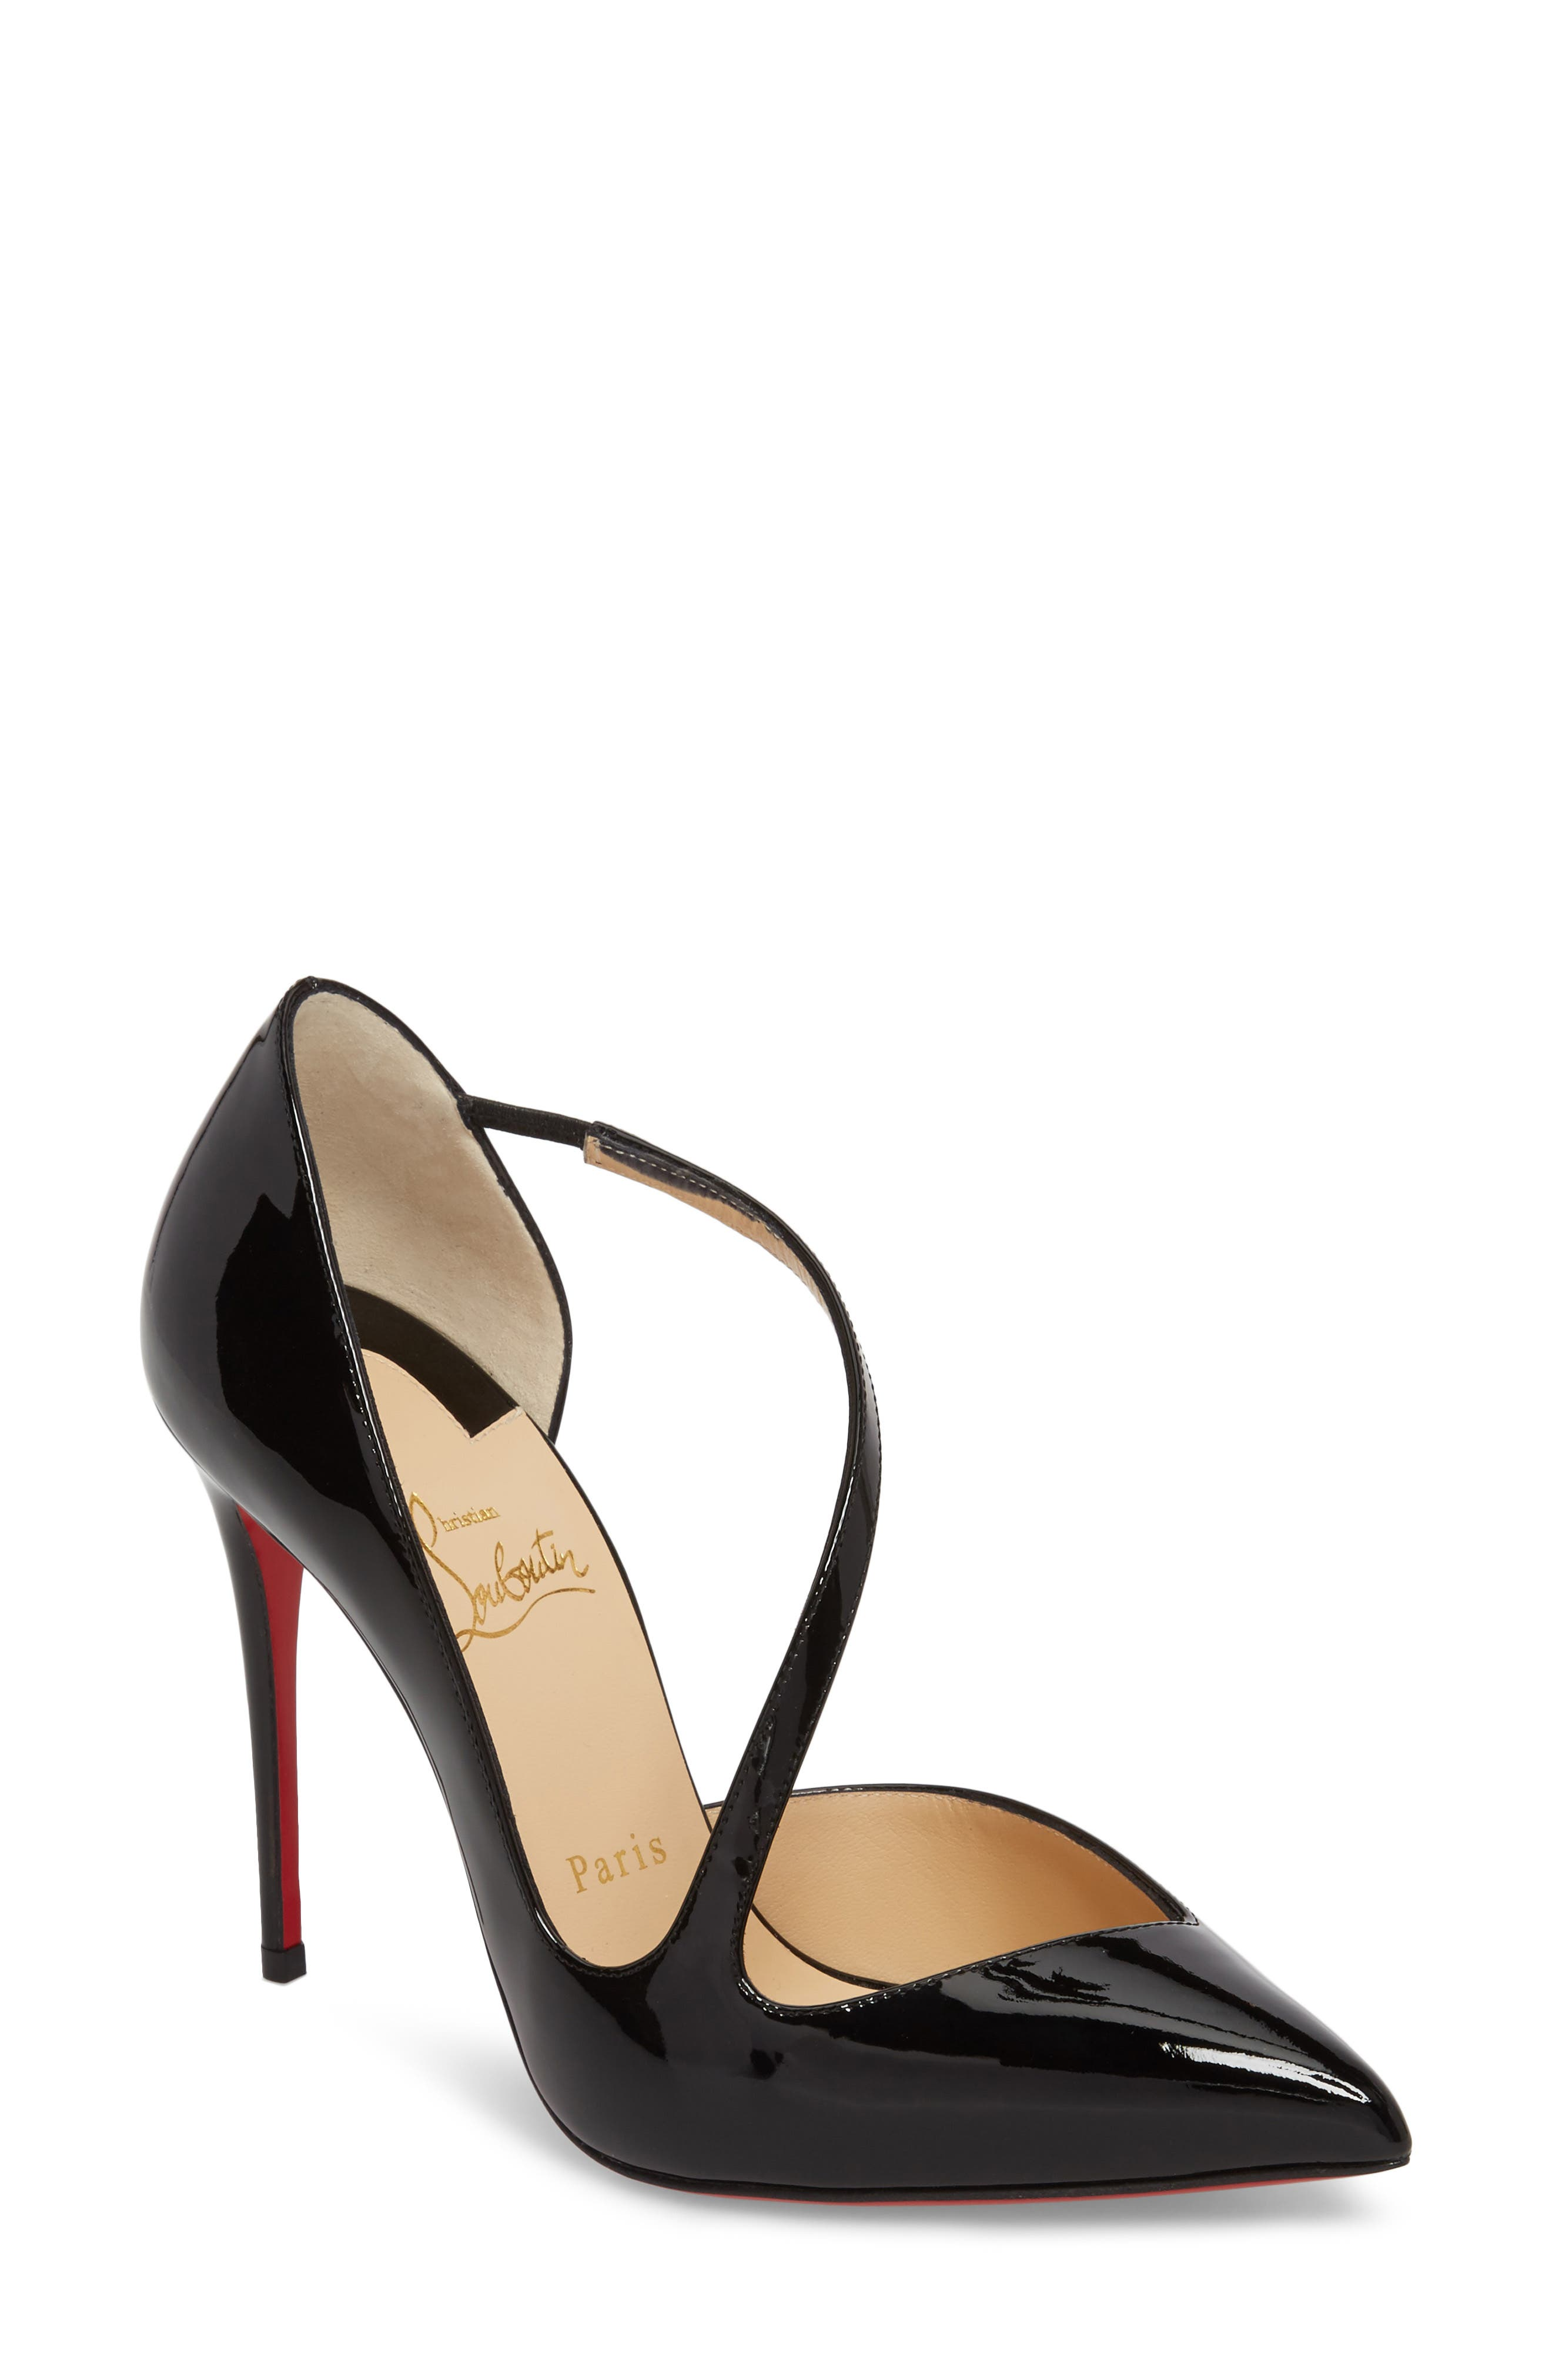 Alternate Image 1 Selected - Christian Louboutin Strappy Half d'Orsay Pump